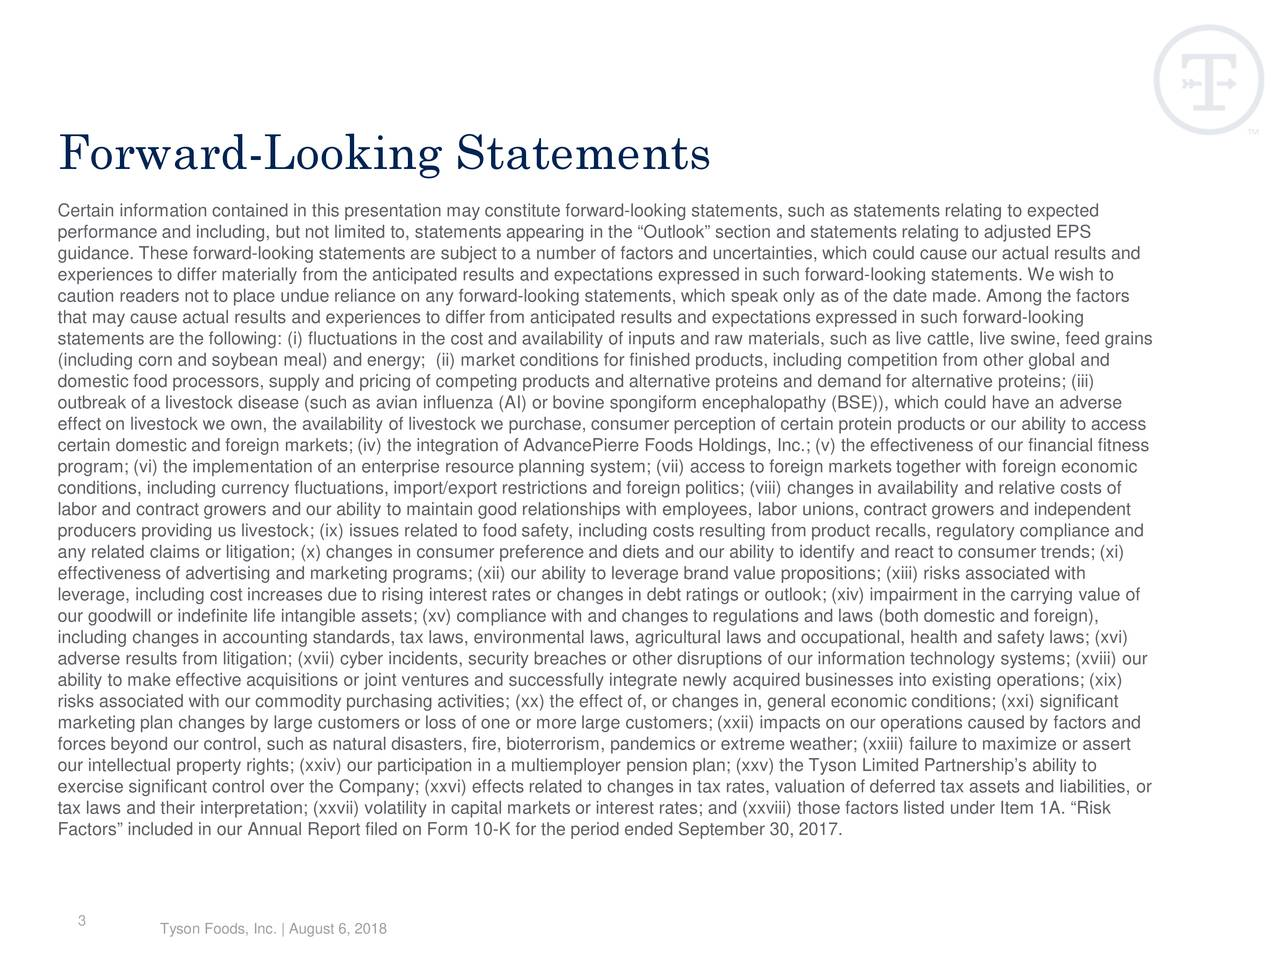 "Certain information contained in this presentation may constitute forward-looking statements, such as statements relating to expected performance and including, but not limited to, statements appearing in the ""Outlook"" section and statements relating to adjusted EPS guidance. These forward-looking statements are subject to a number of factors and uncertainties, which could cause our actual results and experiences to differ materially from the anticipated results and expectations expressed in such forward-looking statements. We wish to caution readers not to place undue reliance on any forward-looking statements, which speak only as of the date made. Among the factors that may cause actual results and experiences to differ from anticipated results and expectations expressed in such forwardl- ooking statements are the following: (i) fluctuations in the cost and availability of inputs and raw materials, such as live cattle, live swine, feed grains (including corn and soybean meal) and energy; (ii) market conditions for finished products, including competition from otherglobal and domestic food processors, supply and pricing of competing products and alternative proteins and demand for alternative proten i s; (iii) outbreak of a livestock disease (such as avian influenza (AI) or bovine spongiform encephalopathy (BSE)), which could have anadverse effect on livestock we own, the availability of livestock we purchase, consumer perception of certain protein products or ourability to access certain domestic and foreign markets; (iv) the integration ofAdvancePierre Foods Holdings, Inc.; (v) the effectiveness of our financial fitness program; (vi) the implementation of an enterprise resource planning system; (vii) access to foreign markets together with foe rign economic conditions, including currency fluctuations, import/export restrictions and foreign politics; (viii) changes in availability and relative costs of labor and contract growers and our ability to maintain good relationships with employees, labor unions, contract growers and independent producers providing us livestock; (ix) issues related to food safety, including costs resulting from product recalls, regulatory compliance and any related claims or litigation; (x) changes in consumer preference and diets and our ability to identify and react to consumertrends; (xi) effectiveness of advertising and marketing programs; (xii) our ability to leverage brand value propositions; (xiii) risksociated with leverage, including cost increases due to rising interest rates or changes in debt ratings or outlook; (xiv) impairment in tharrying value of our goodwill or indefinite life intangible assets; (xv) compliance with and changes to regulations and laws (both domestic ando freign), including changes in accounting standards, tax laws, environmental laws, agricultural laws and occupational, health and safety laws; (xvi) adverse results from litigation; (xvii) cyber incidents, security breaches or other disruptions of our information technologysystems; (xviii) our ability to make effective acquisitions or joint ventures and successfully integrate newly acquired businesses into existing operations; (xix) risks associated with our commodity purchasing activities; (xx) the effect of, or changes in, general economic conditions; (xxi) significant marketing plan changes by large customers or loss of one or more large customers; (xxii) impacts on our operations caused byfactors and forces beyond our control, such as natural disasters, fire, bioterrorism, pandemics or extreme weather; (xxiii) failure to maxiize or assert our intellectual property rights; (xxiv) our participation in a multiemployer pension plan; (xxv) the Tyson Limited Partnership's ability to exercise significant control over the Company; (xxvi) effects related to changes in tax rates, valuation of deferred tax assetsand liabilities, or tax laws and their interpretation; (xxvii) volatility in capital markets or interest rates; and (xxviii) those factors listedunder Item 1A. ""Risk Factors"" included in our Annual Report filed on Form 10-K for the period ended September 30, 2017. 3 Tyson Foods, Inc. 